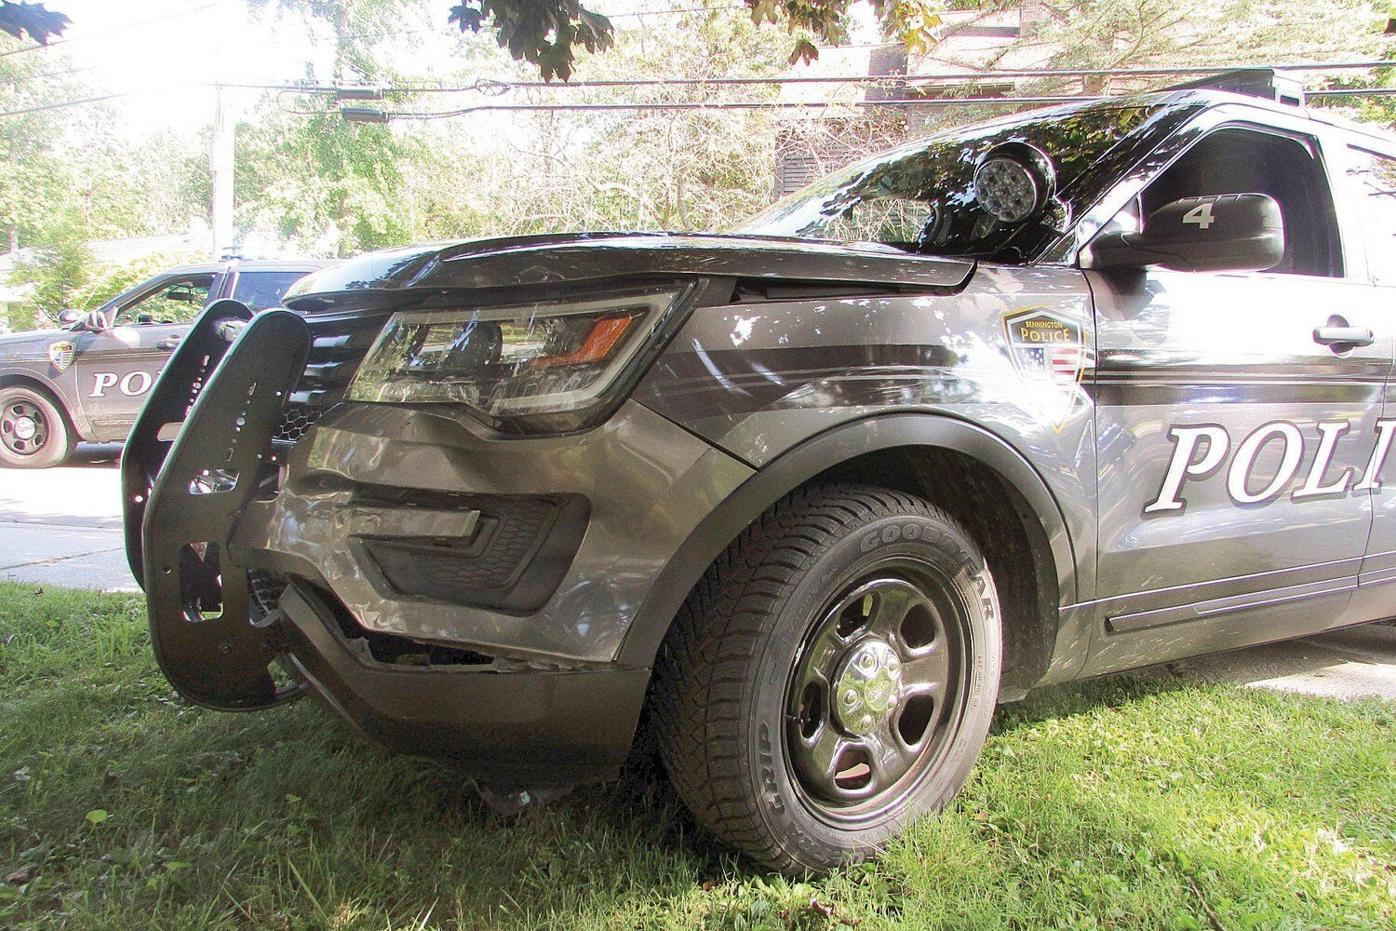 Police: Cruiser 'rammed' by fleeing suspect (copy)